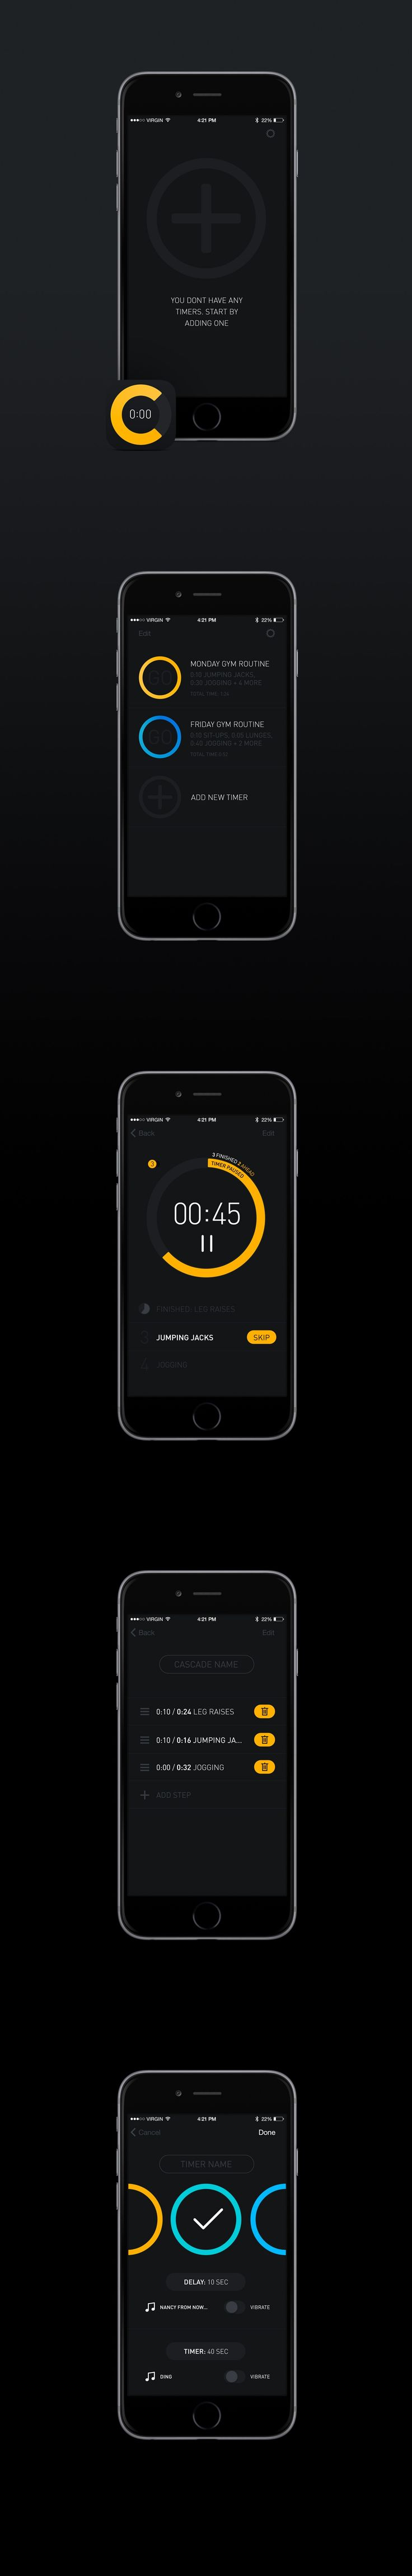 Design #104 di Marzie | Create modern, flat UI design for timer app